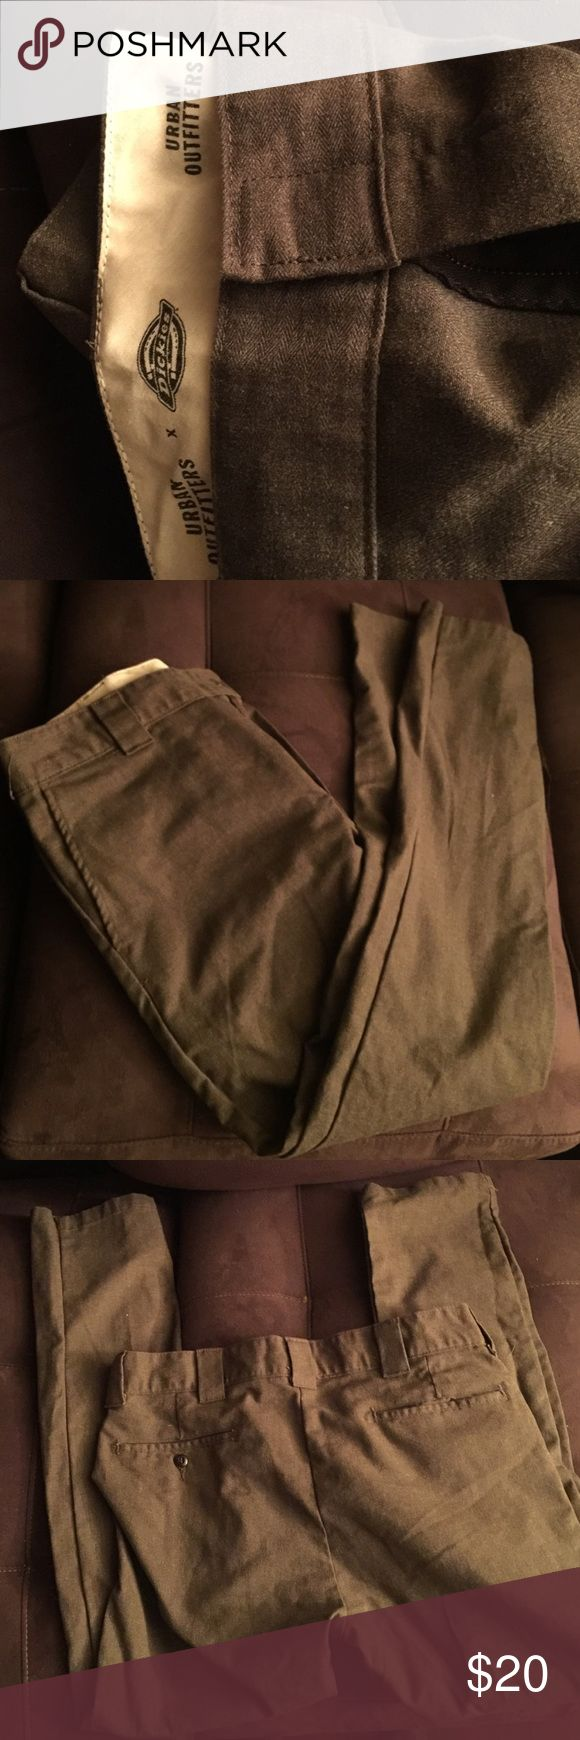 Men's brown urban outfitters pant Brown dickies from urban outfitters. Cotton and polyester mix. Business casual slim taper 34 x 32 Urban Outfitters Pants